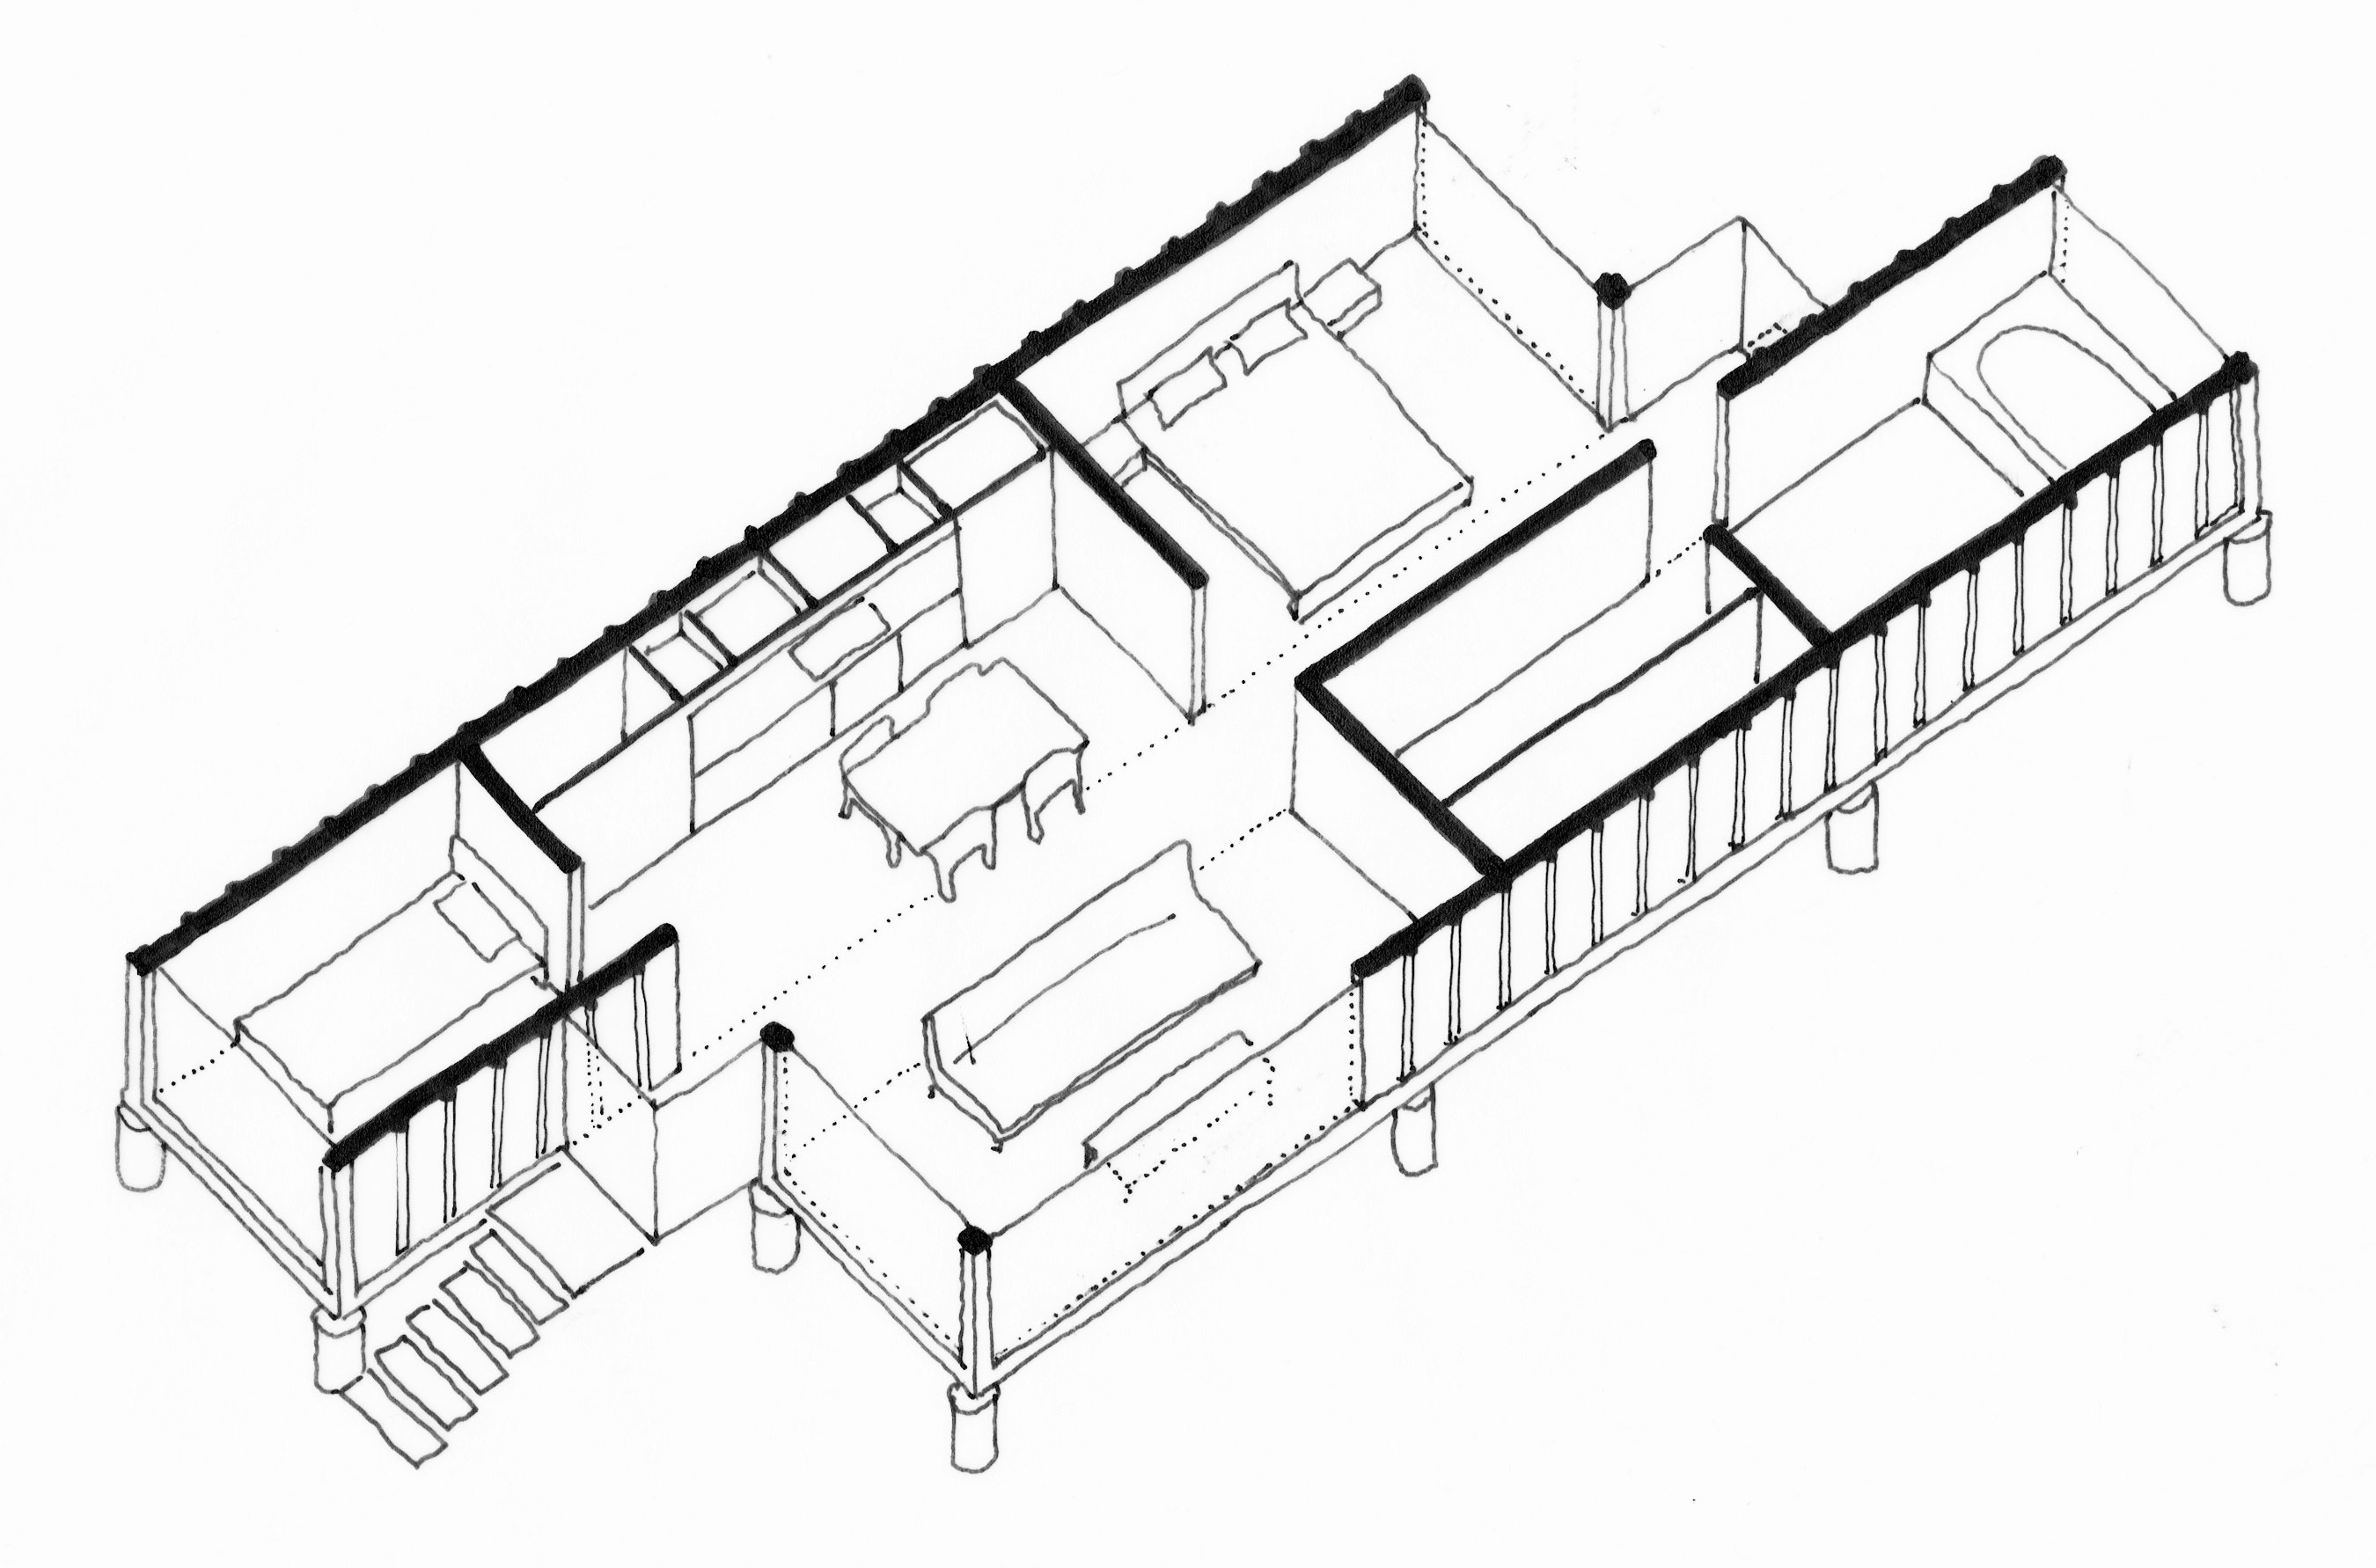 Home Construction Drawing At Free For Personal Use Origami Sword Diagrams Get Domain Pictures Getdomainvidscom 2700x1782 Shipping Container Design Techniques On